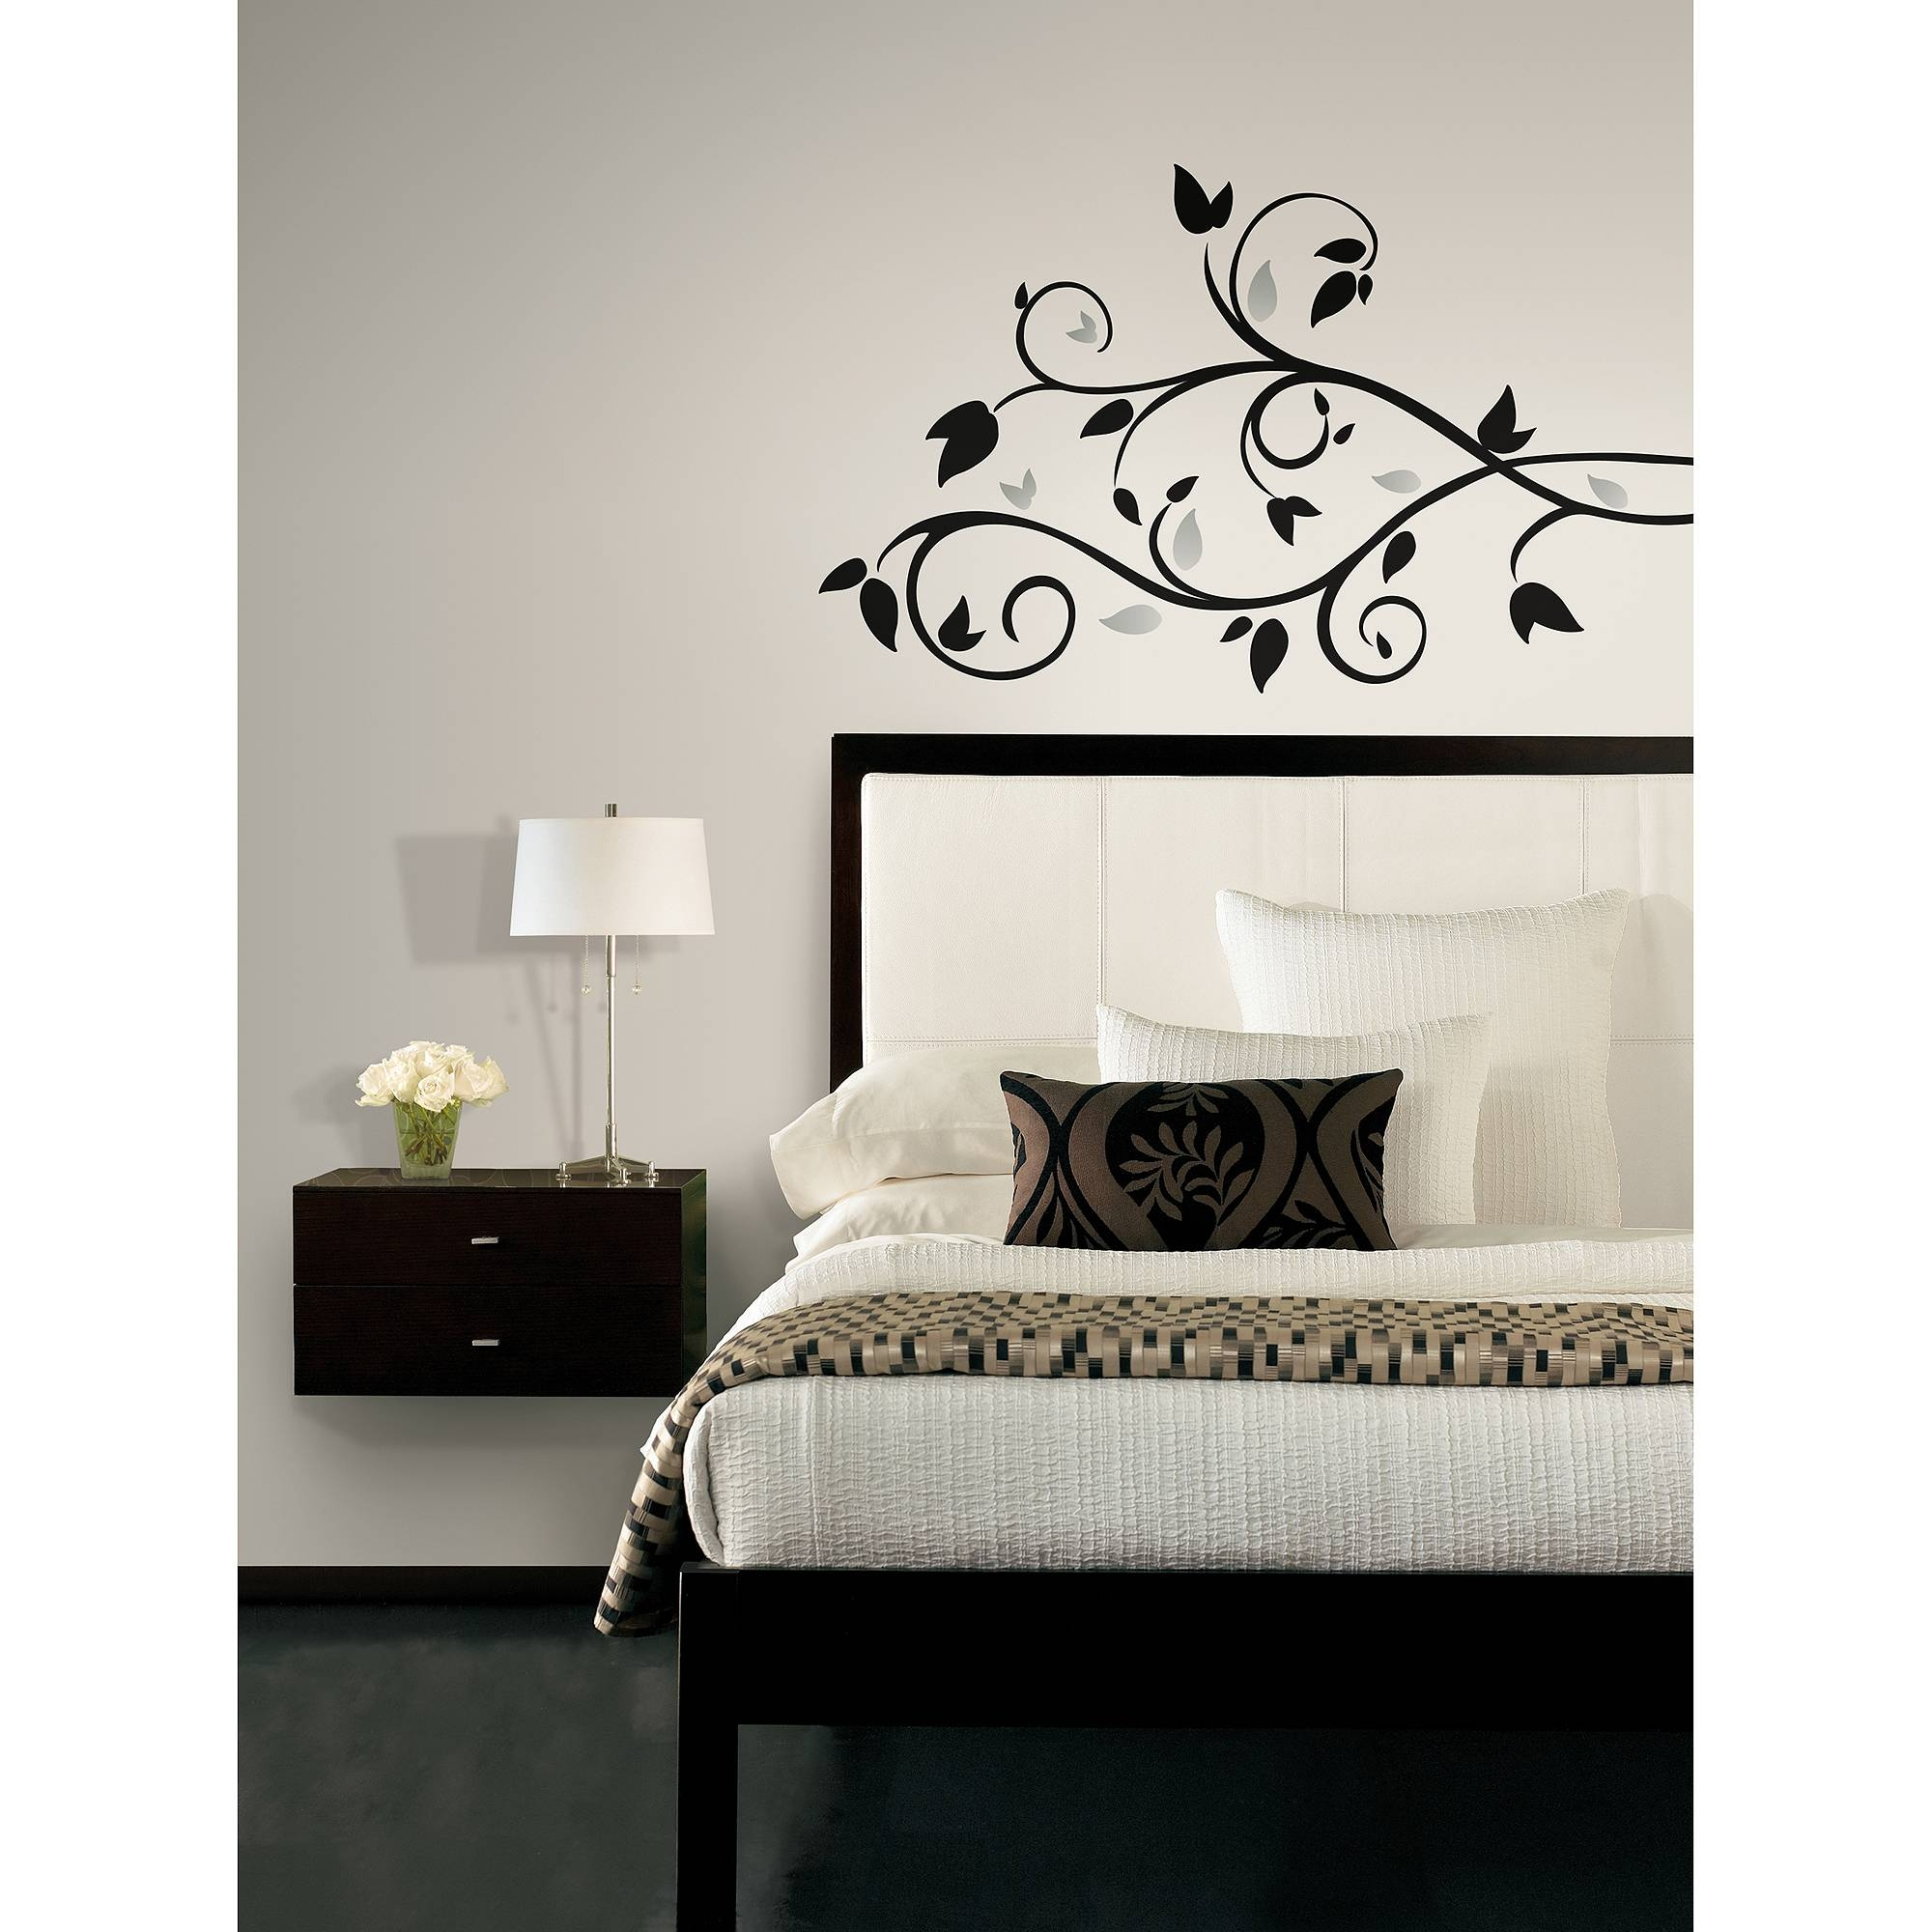 Roommates Foil Tree Branch Peel And Stick Wall Decal – Walmart Throughout Latest Walmart Wall Stickers (Gallery 2 of 25)